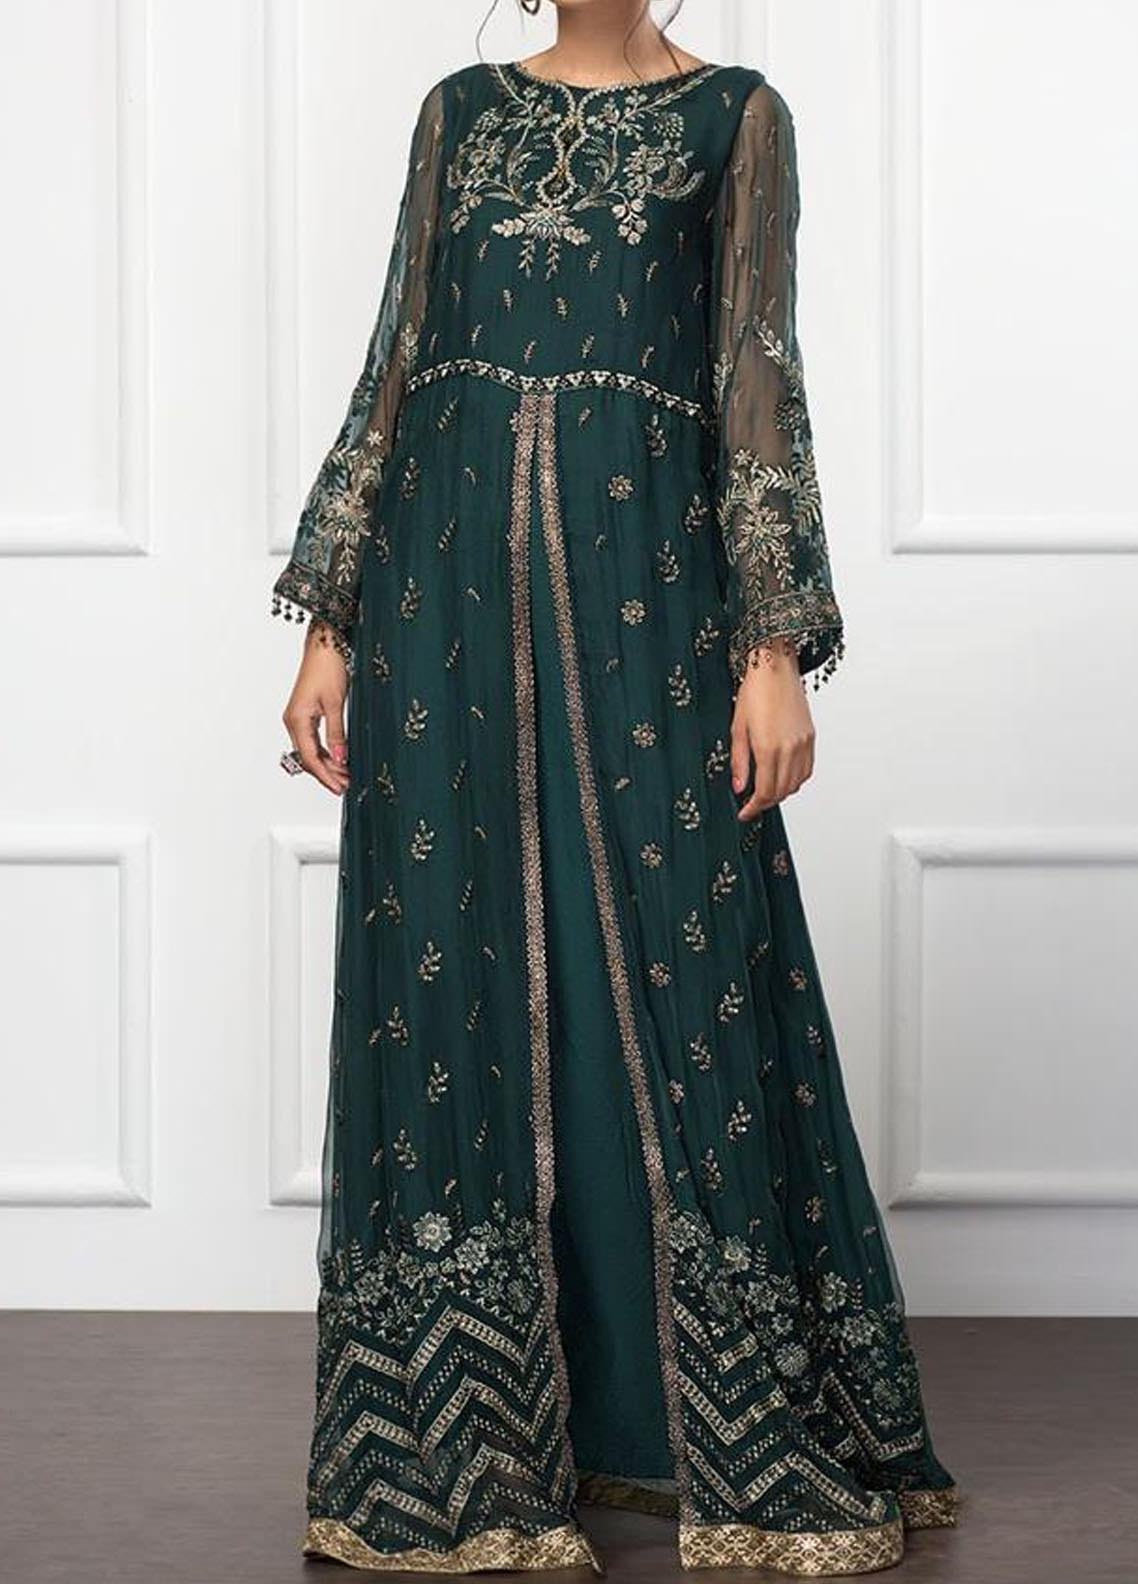 XENIA Formals Embroidered Chiffon Stitched 2 Piece Suit XFR-20-149 ARCADIA GRACE